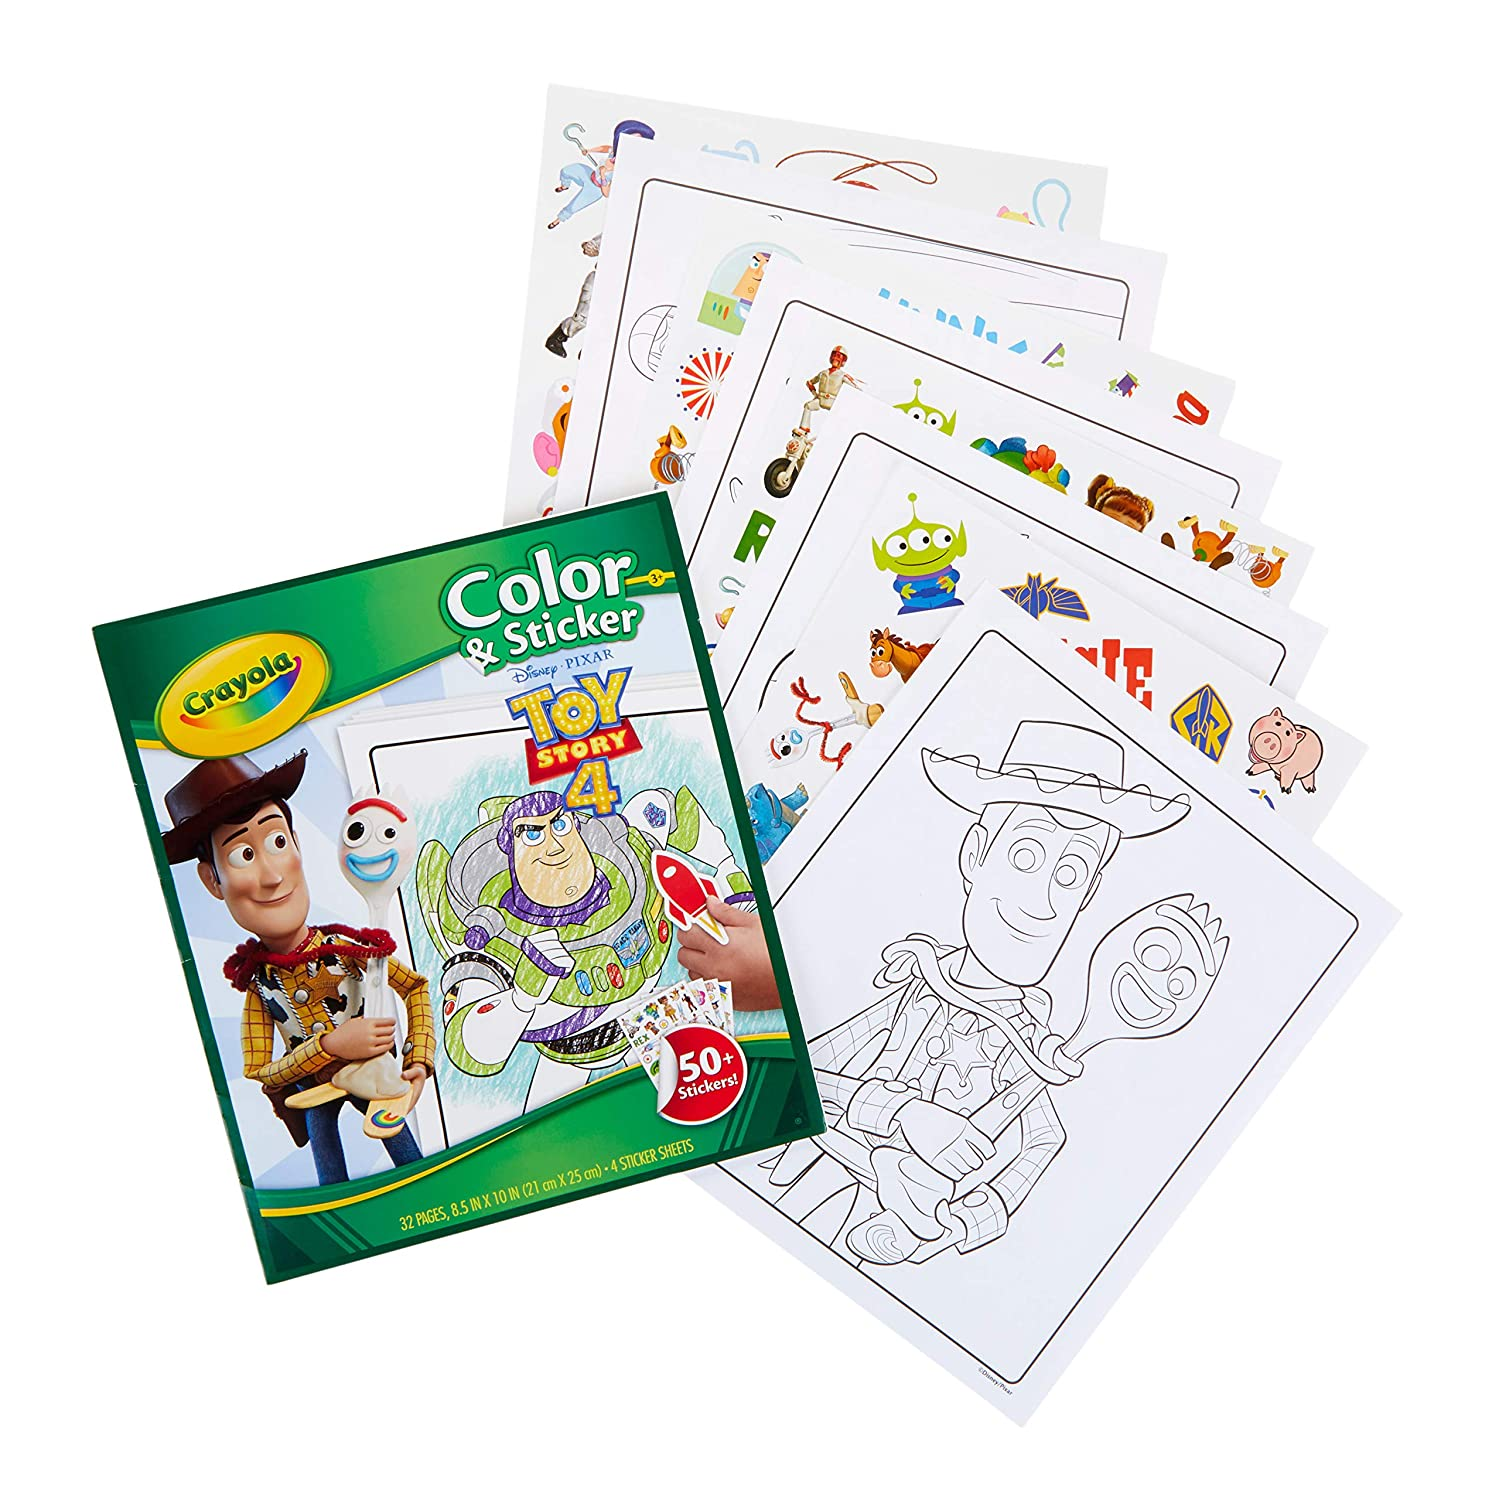 Crayola Toy Story 4 Coloring Pages Stickers Gift For Kids Age 3 4 5 6 7